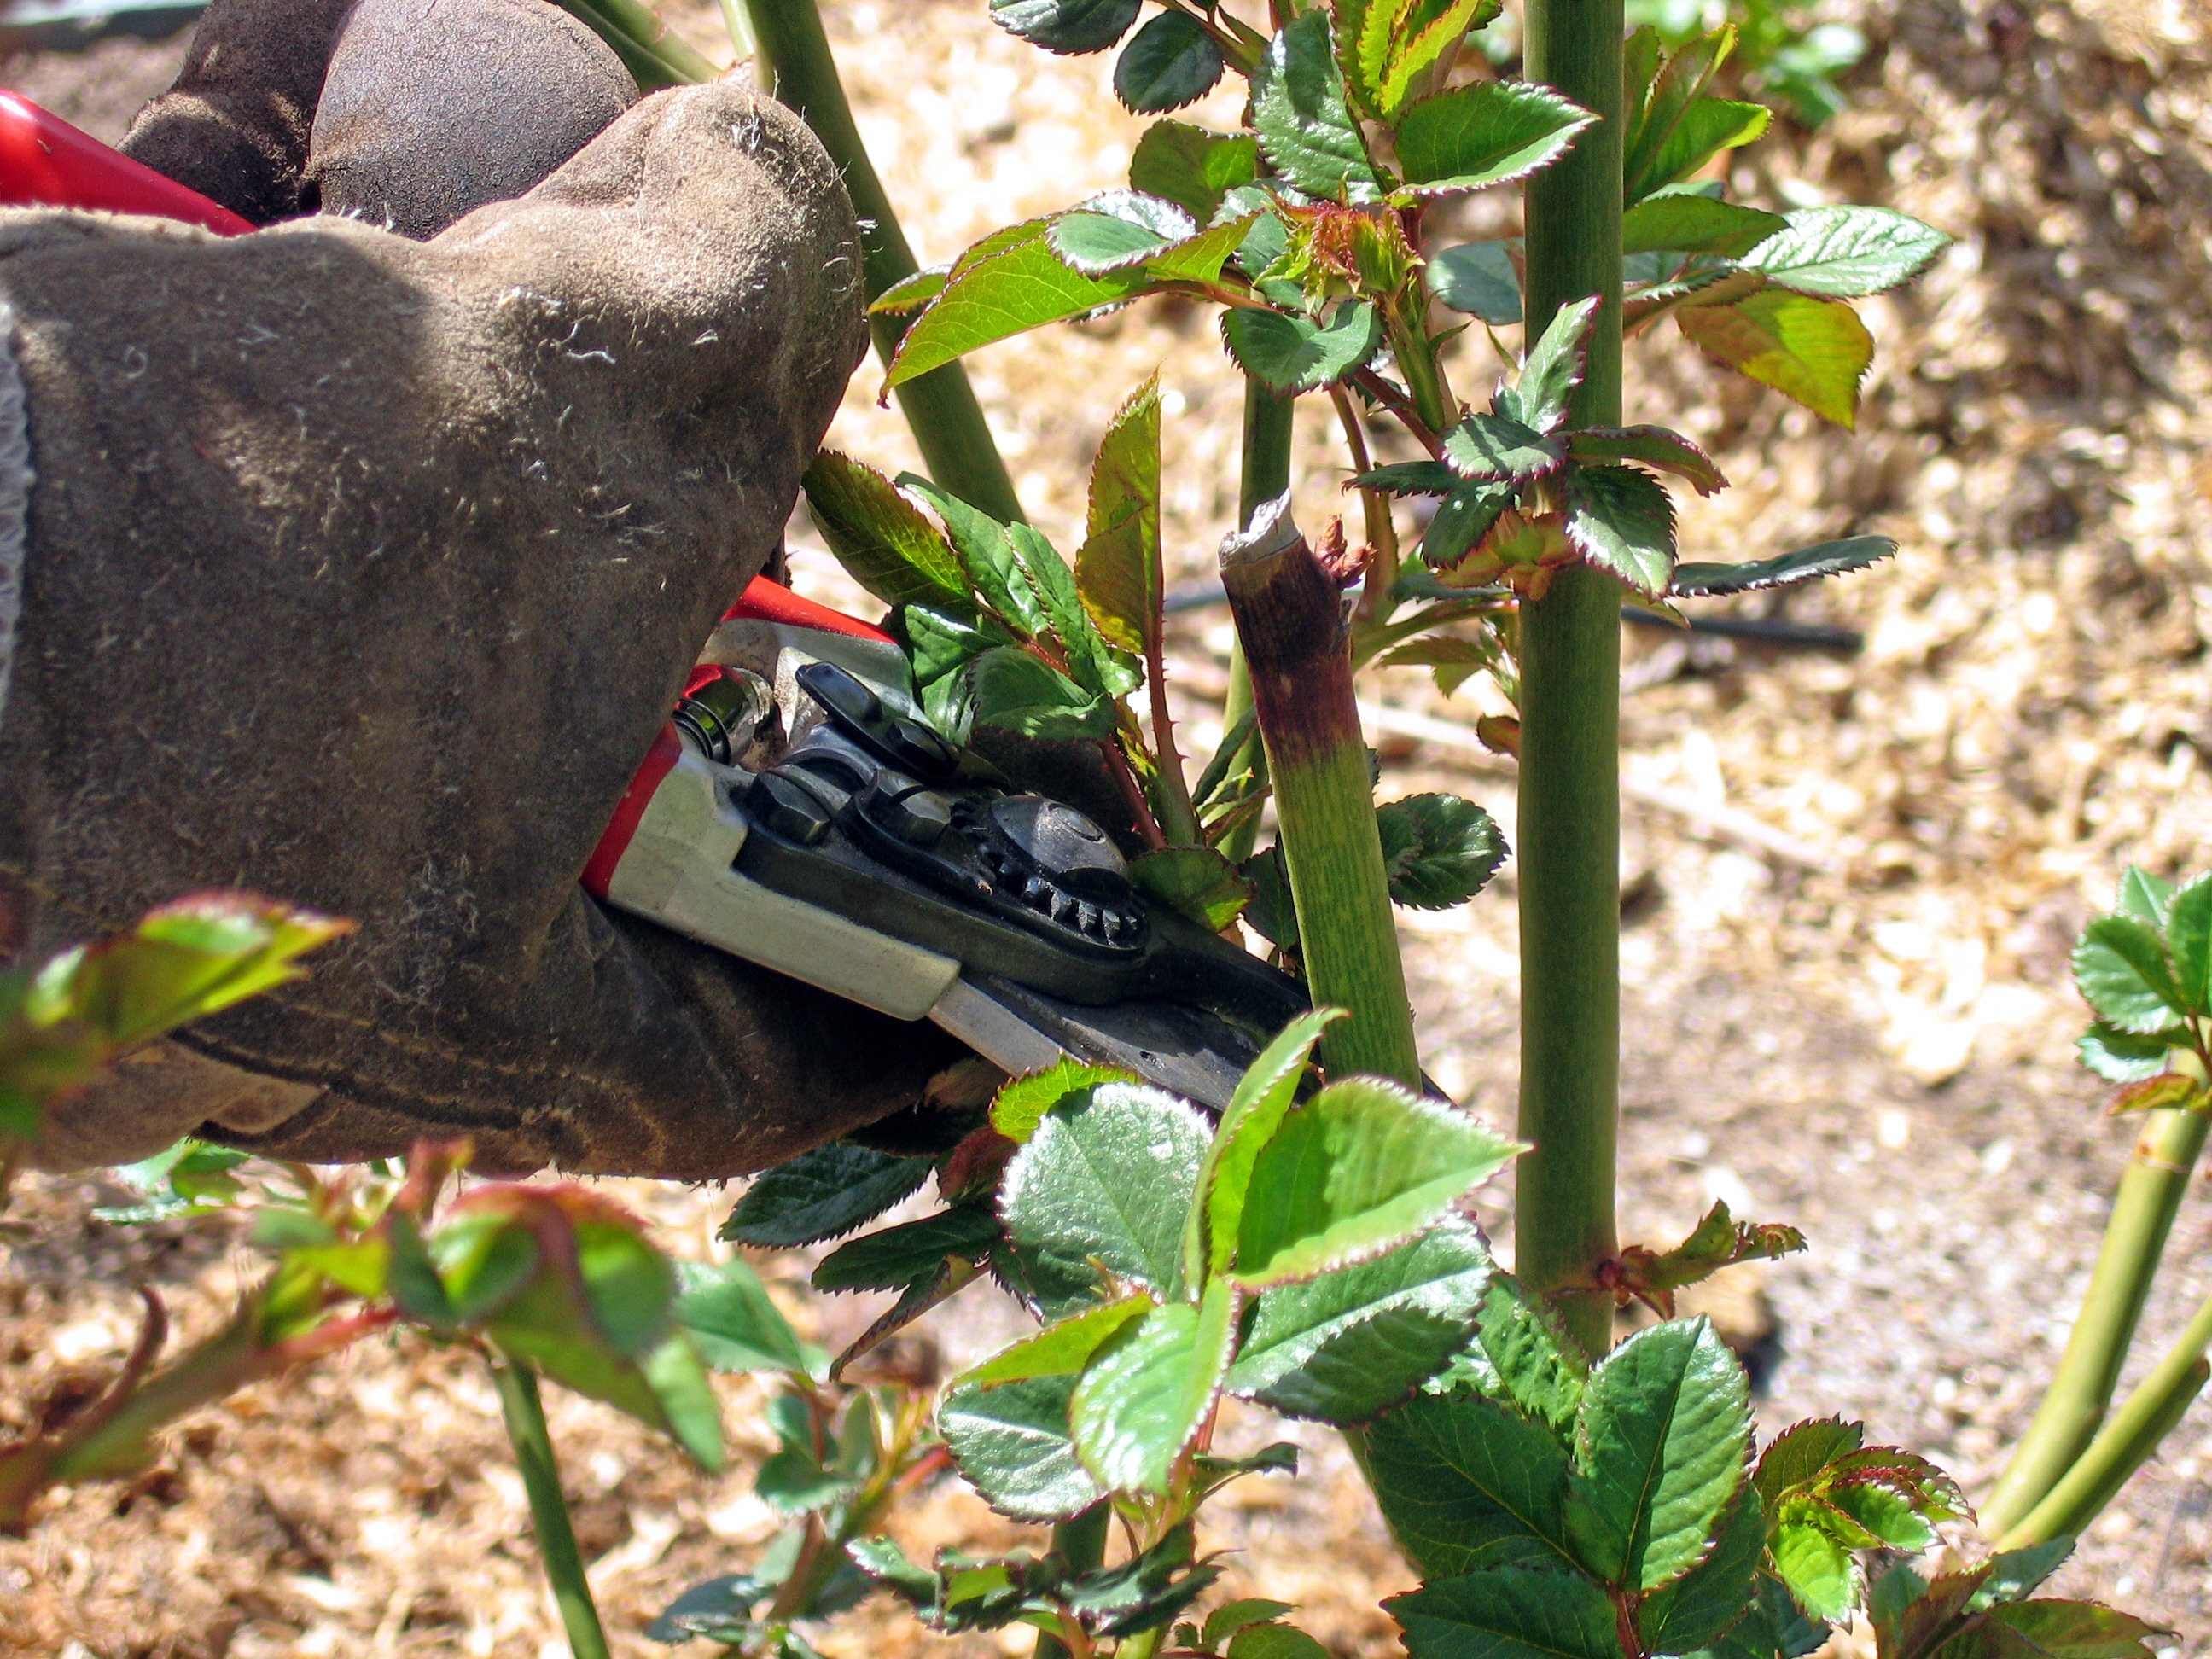 1404388840_gloves-and-shear-for-pruning-roses